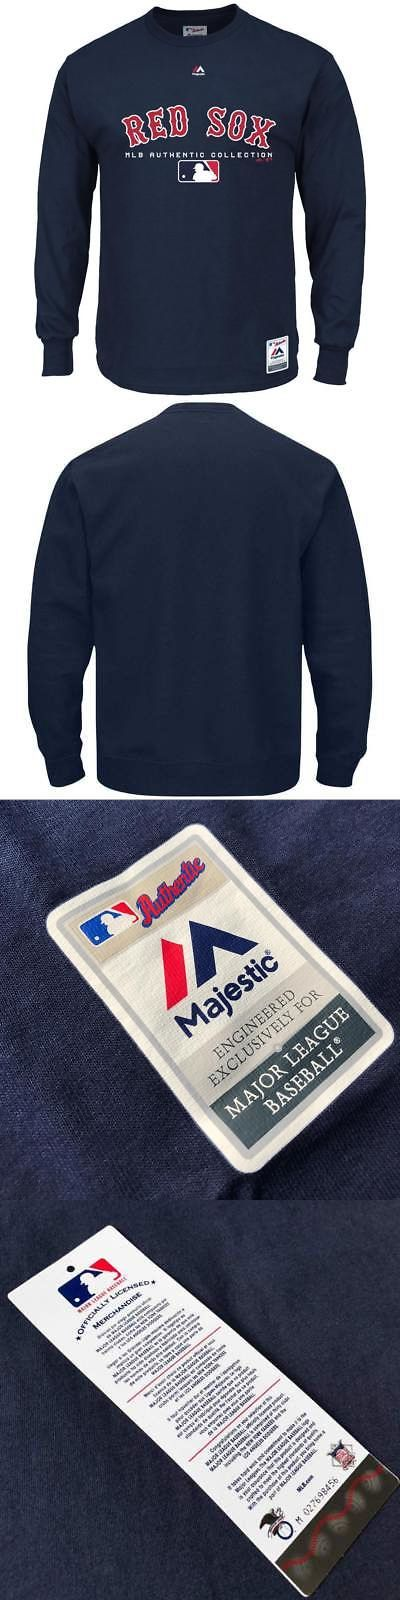 c7591a546 Baseball Shirts and Jerseys 181336  Boston Red Sox Majestic Mlb Team Drive  Long Sleeve T-Shirt - Navy -  BUY IT NOW ONLY   59.95 on  eBay  baseball   shirts ...